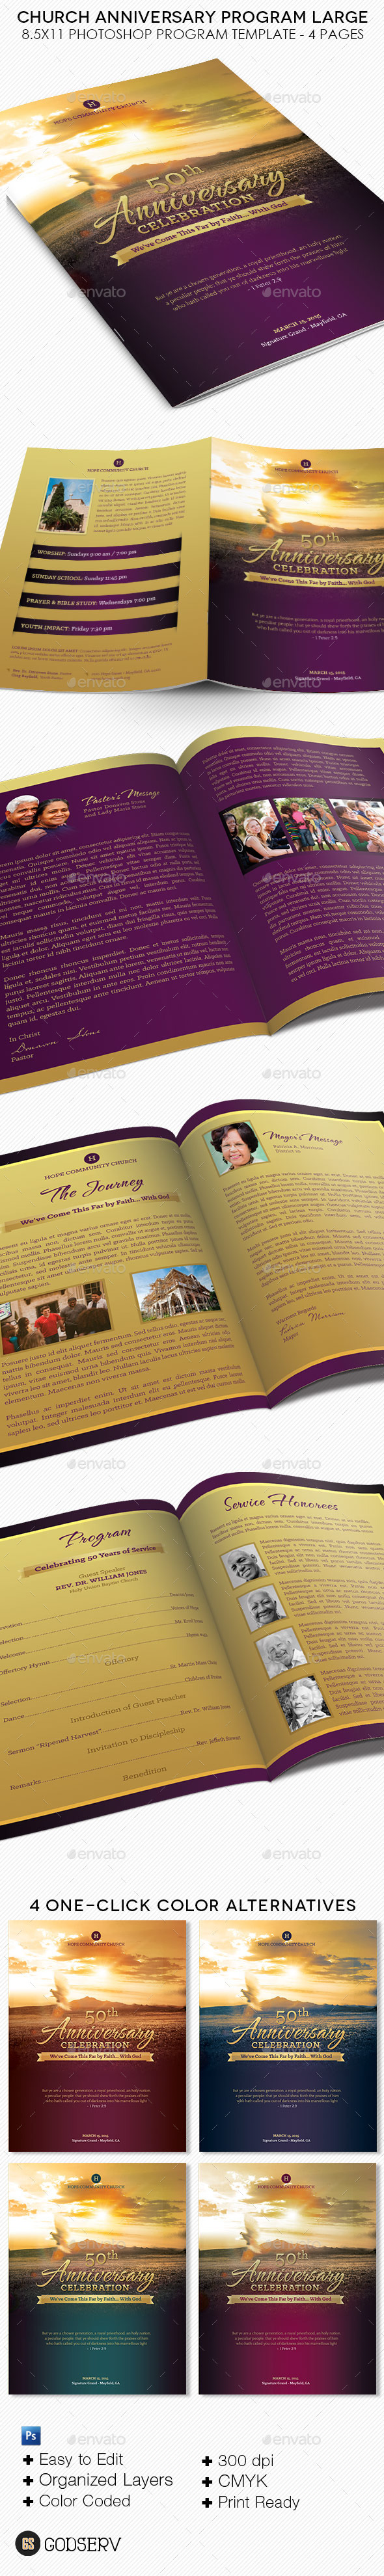 Church Anniversary Service Program Large Template - Informational Brochures